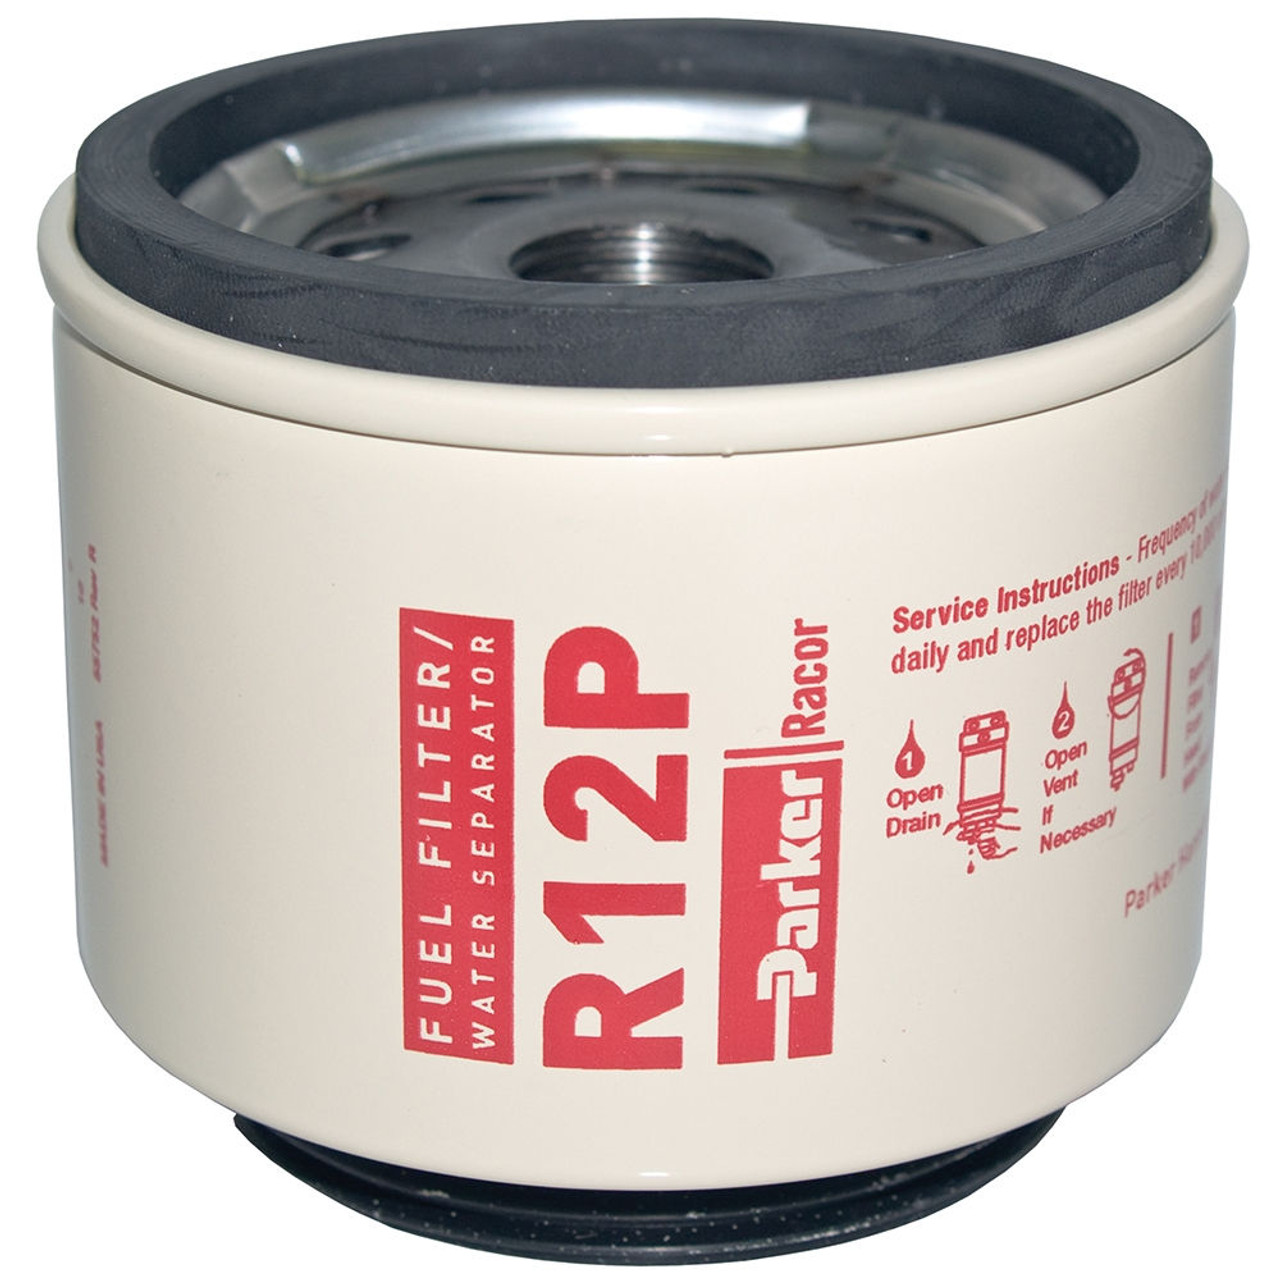 racor 120a low flow fuel filter water separator 30 micron [ 1000 x 1000 Pixel ]